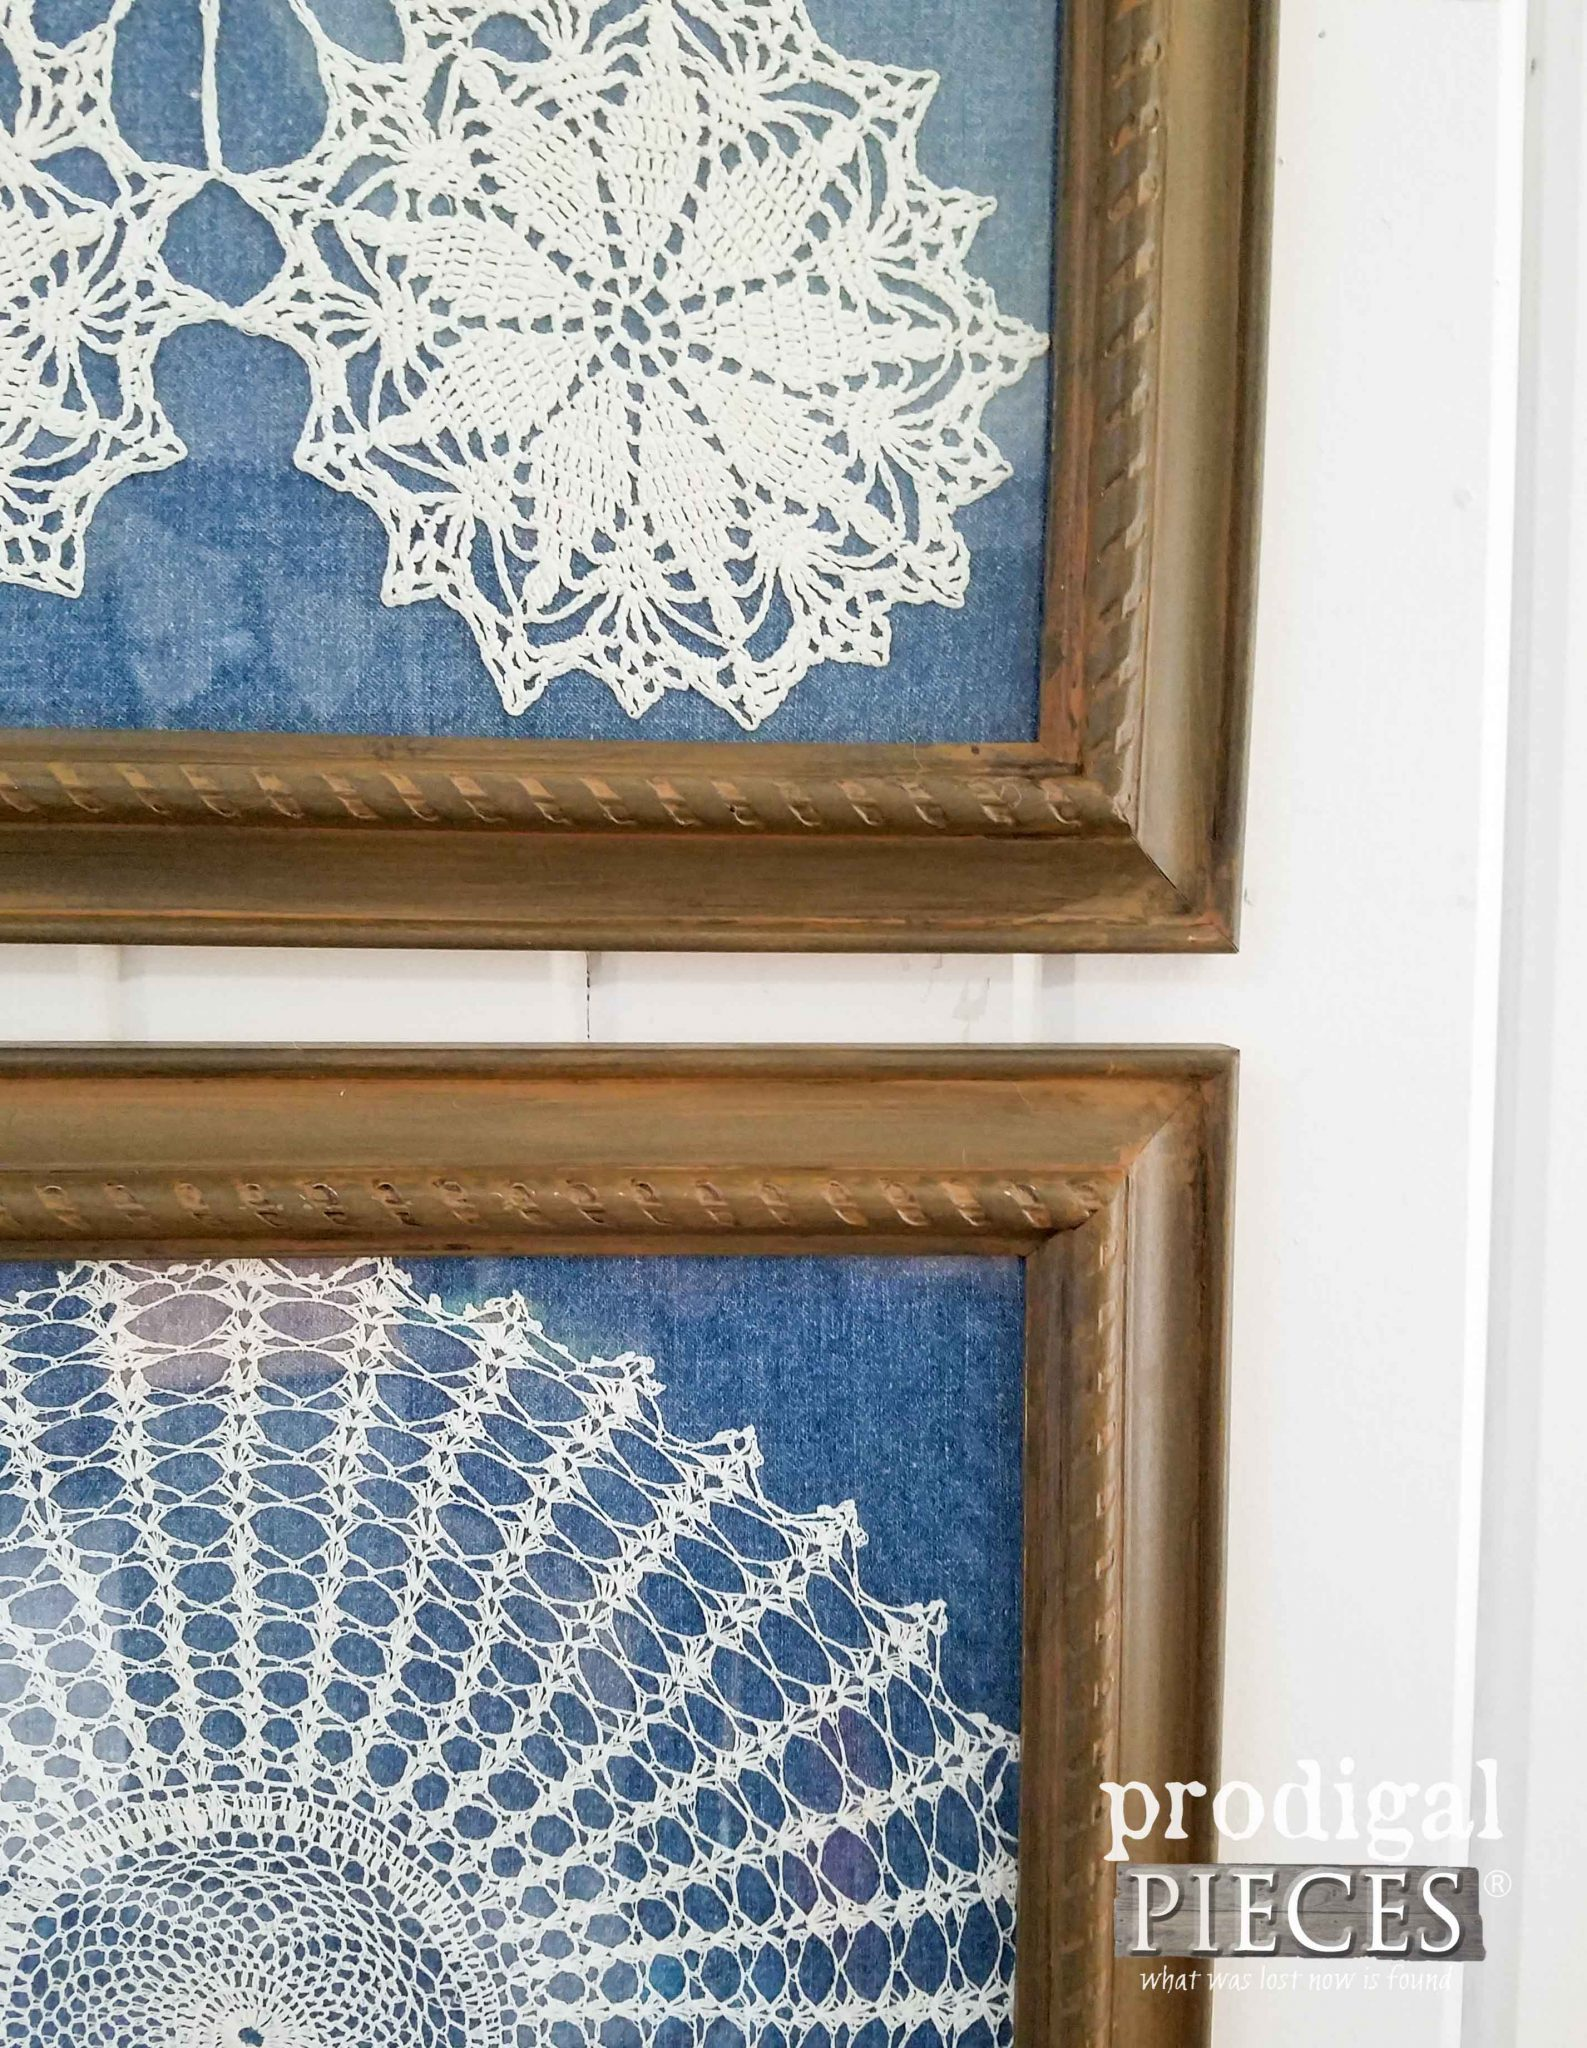 Framed Doily Closeup of Layers | Prodigal Pieces | prodigalpieces.com